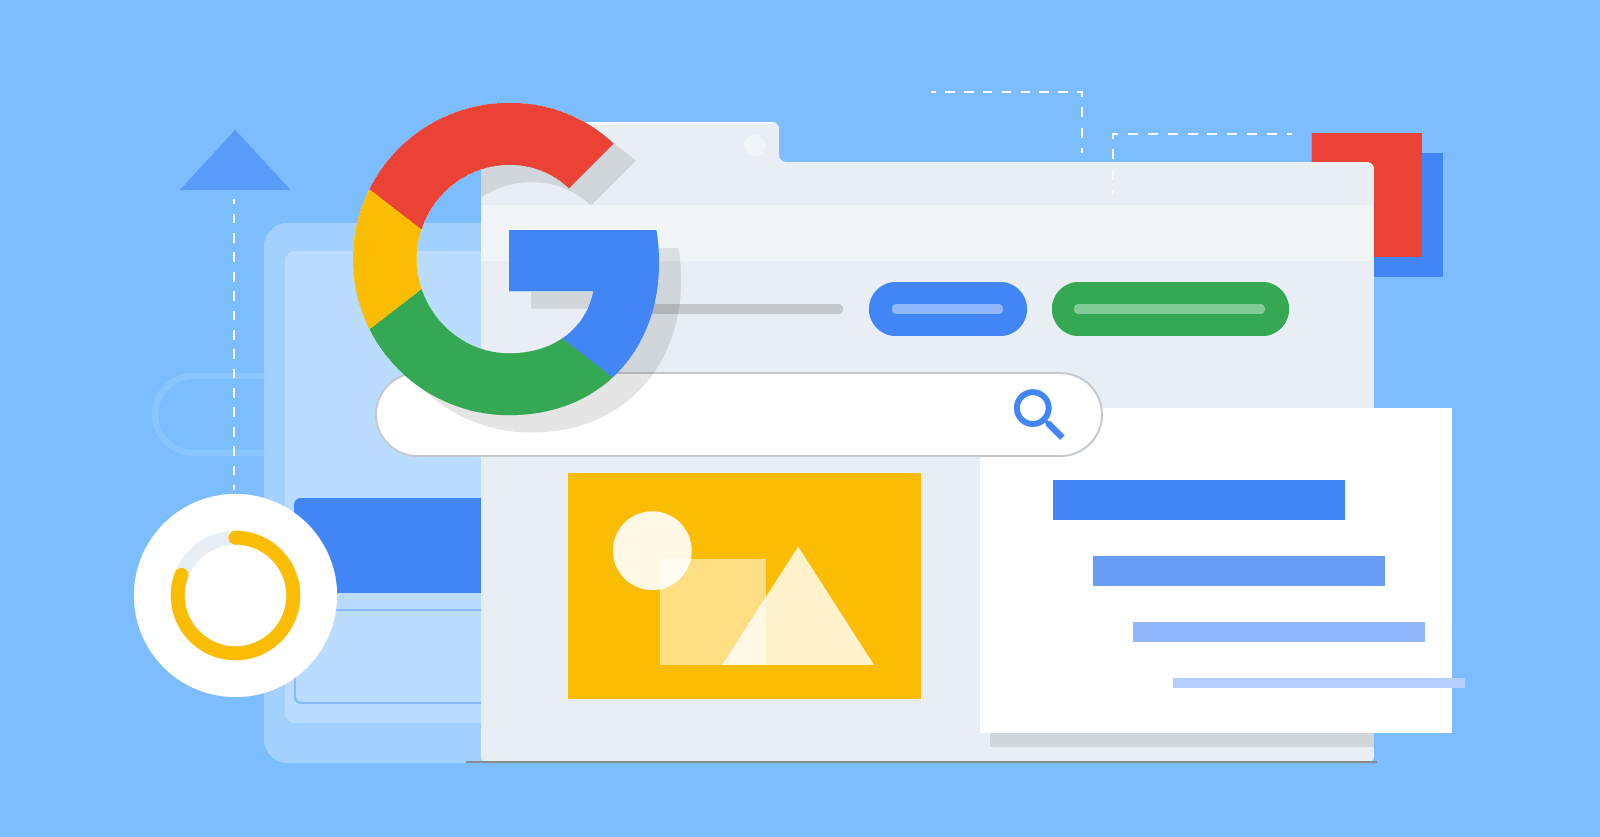 Google's 200 Ranking Factors: The Complete List (2021)